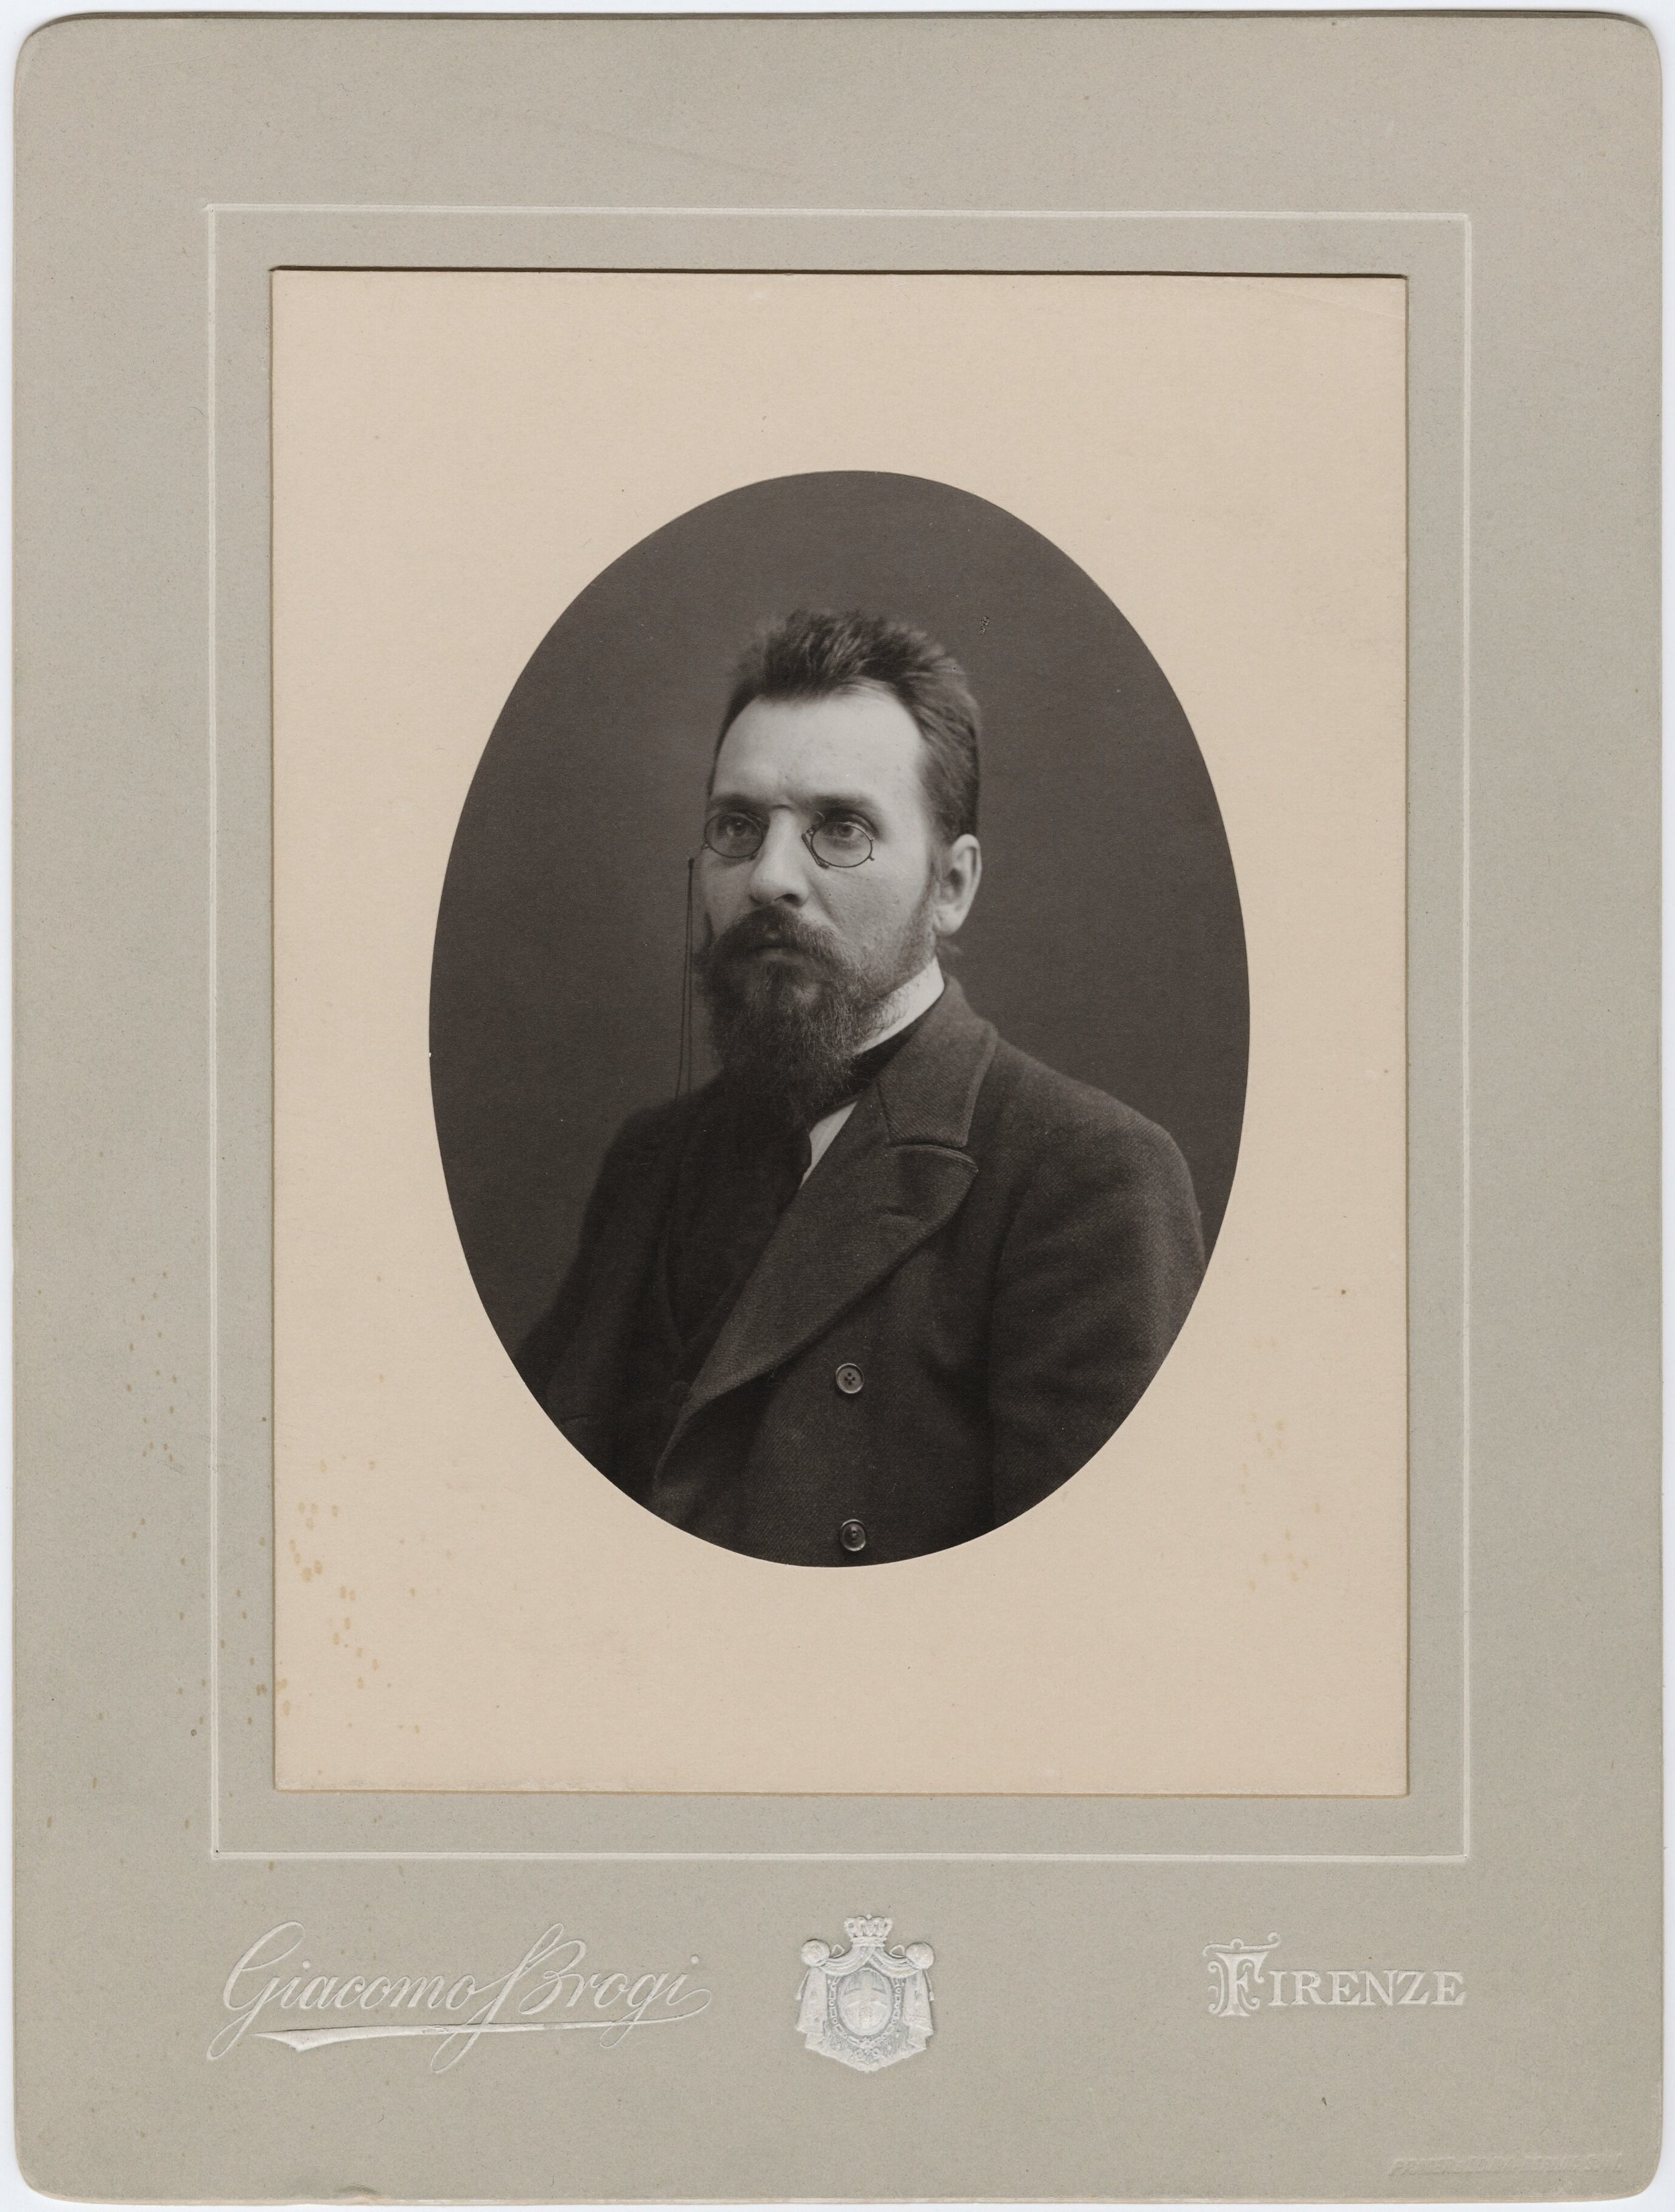 Undated photo of Wilfrid Voynich, from the Beinecke Rare Book & Manuscript Library, probably shortly after 1900